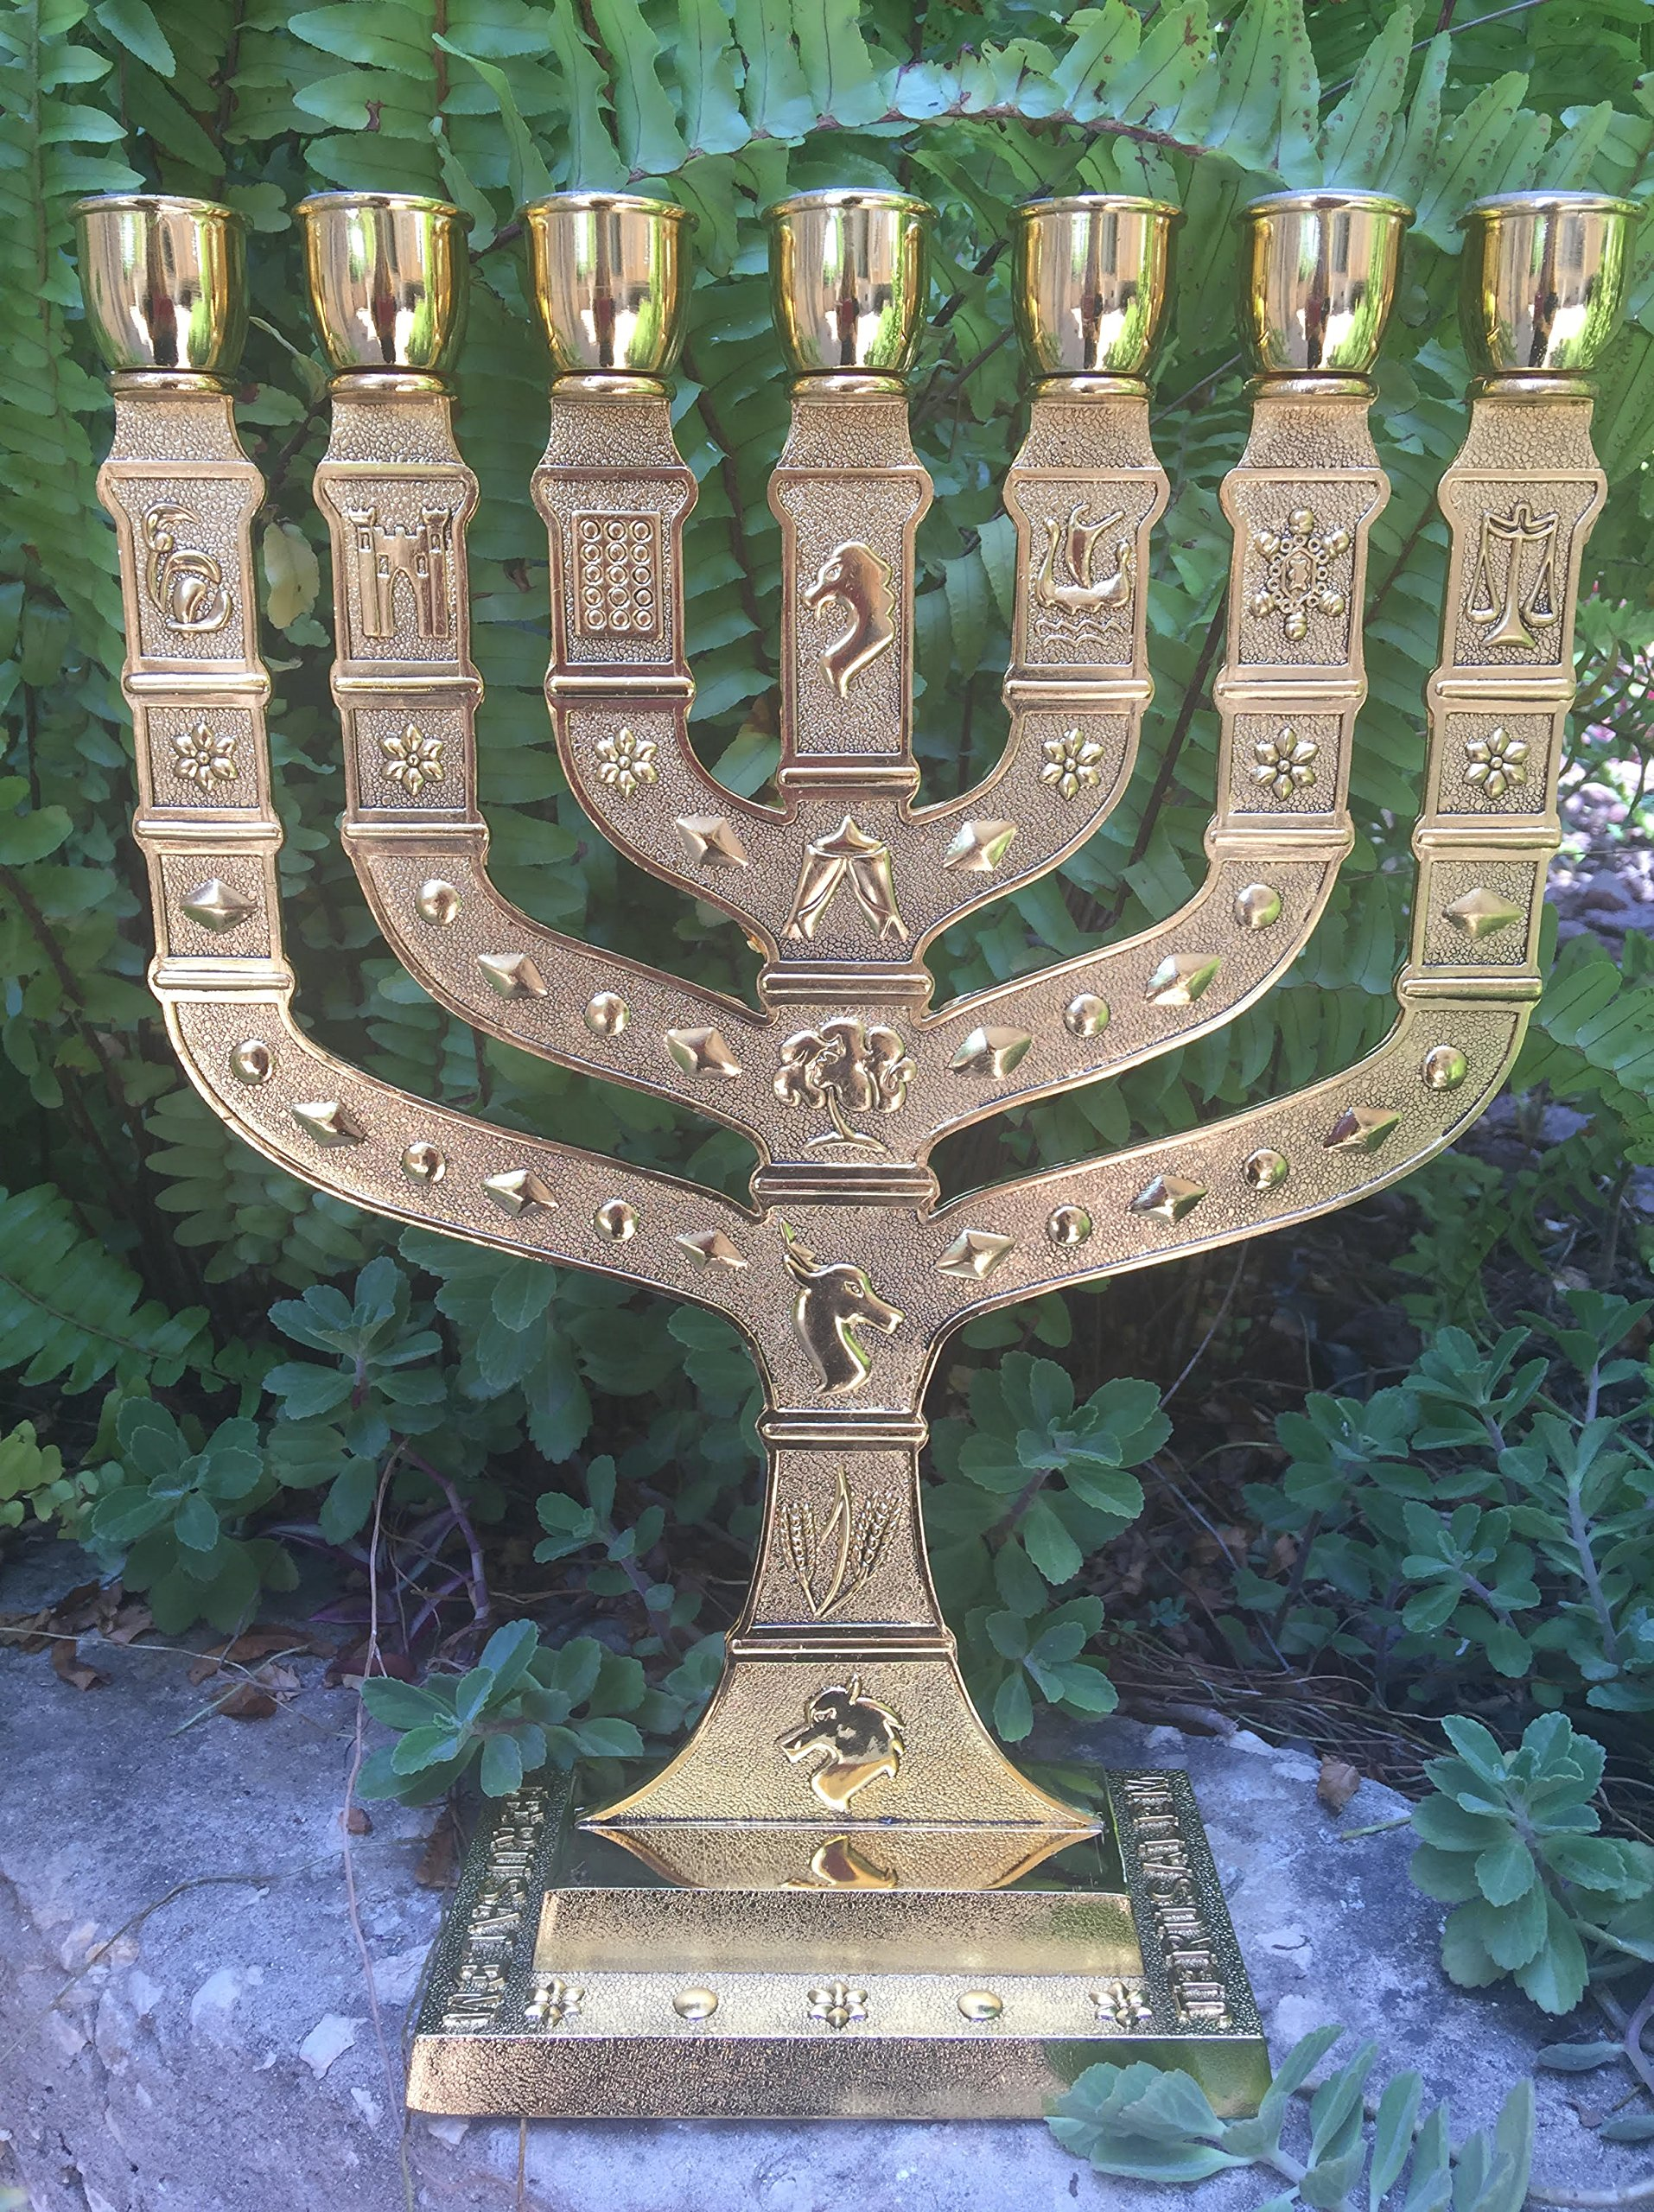 Yaliland Large Authentic Menorah in Gold Plated with 12 Signs from Jerusalem 14'' Inch Heigh by Yaliland (Image #3)